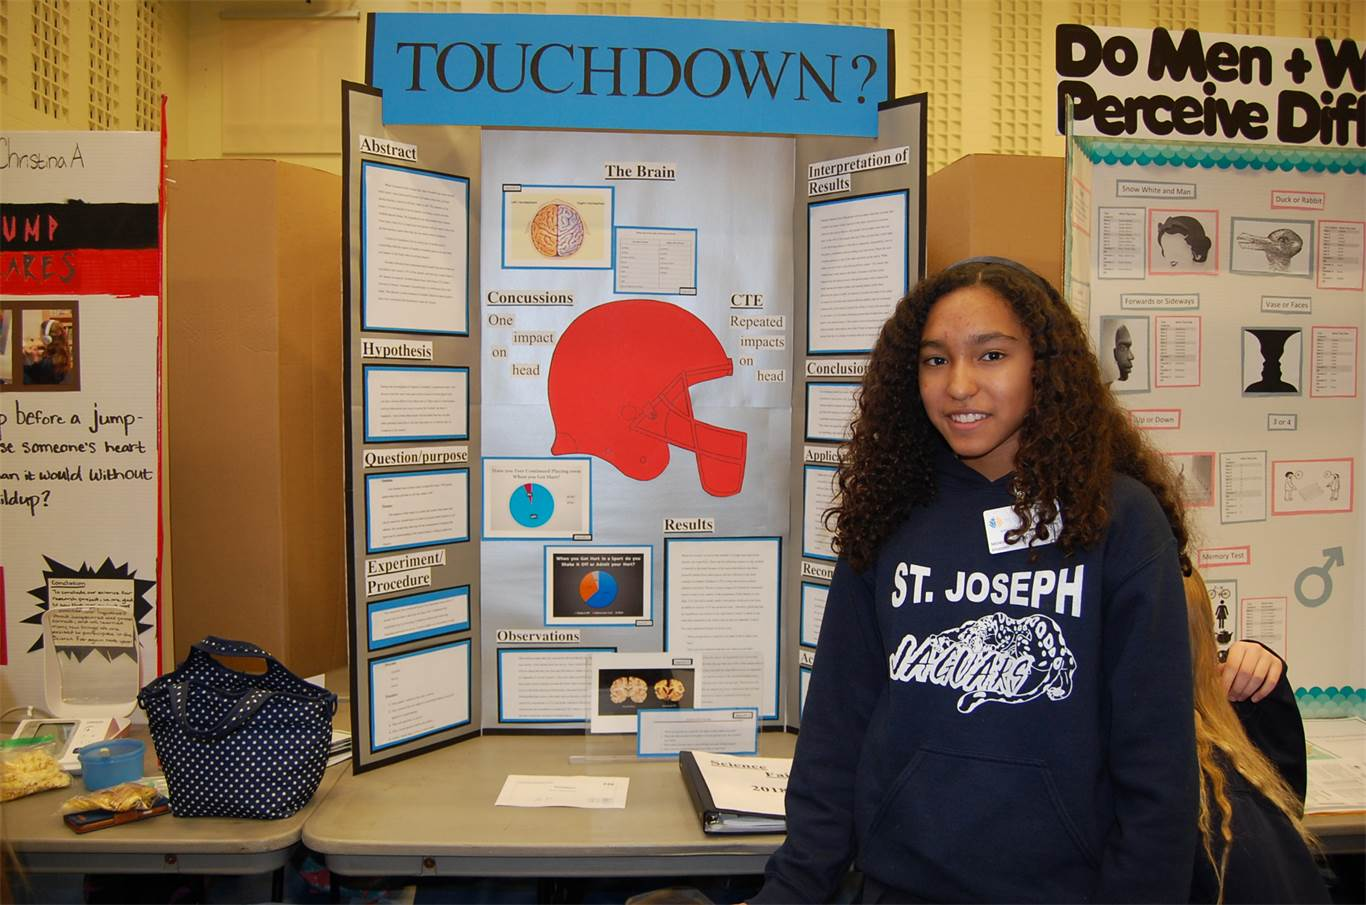 Nichole Fajardo-Orozco was inspired to do her science project on Concussions and CTE after witnessing a football player get knocked unconscious at a University of Notre Dame football game in November. The Grade 8 St. Joseph student advises individuals to always seek help after a head injury to prevent CTE, a neurodegenerative disease from which there is no recovery.